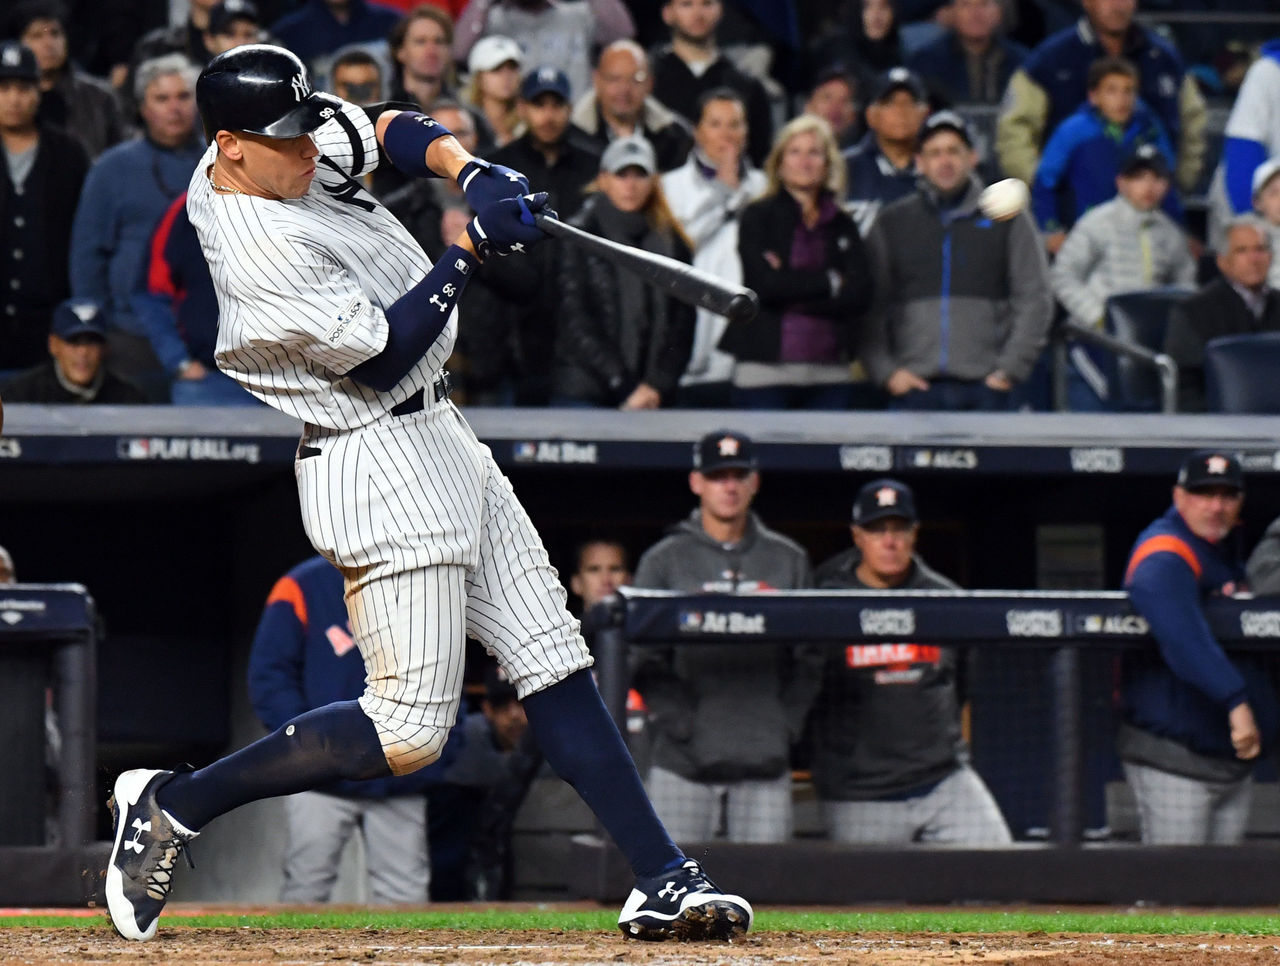 Cropped 2017 10 17t015543z 2013072359 nocid rtrmadp 3 mlb alcs houston astros at new york yankees